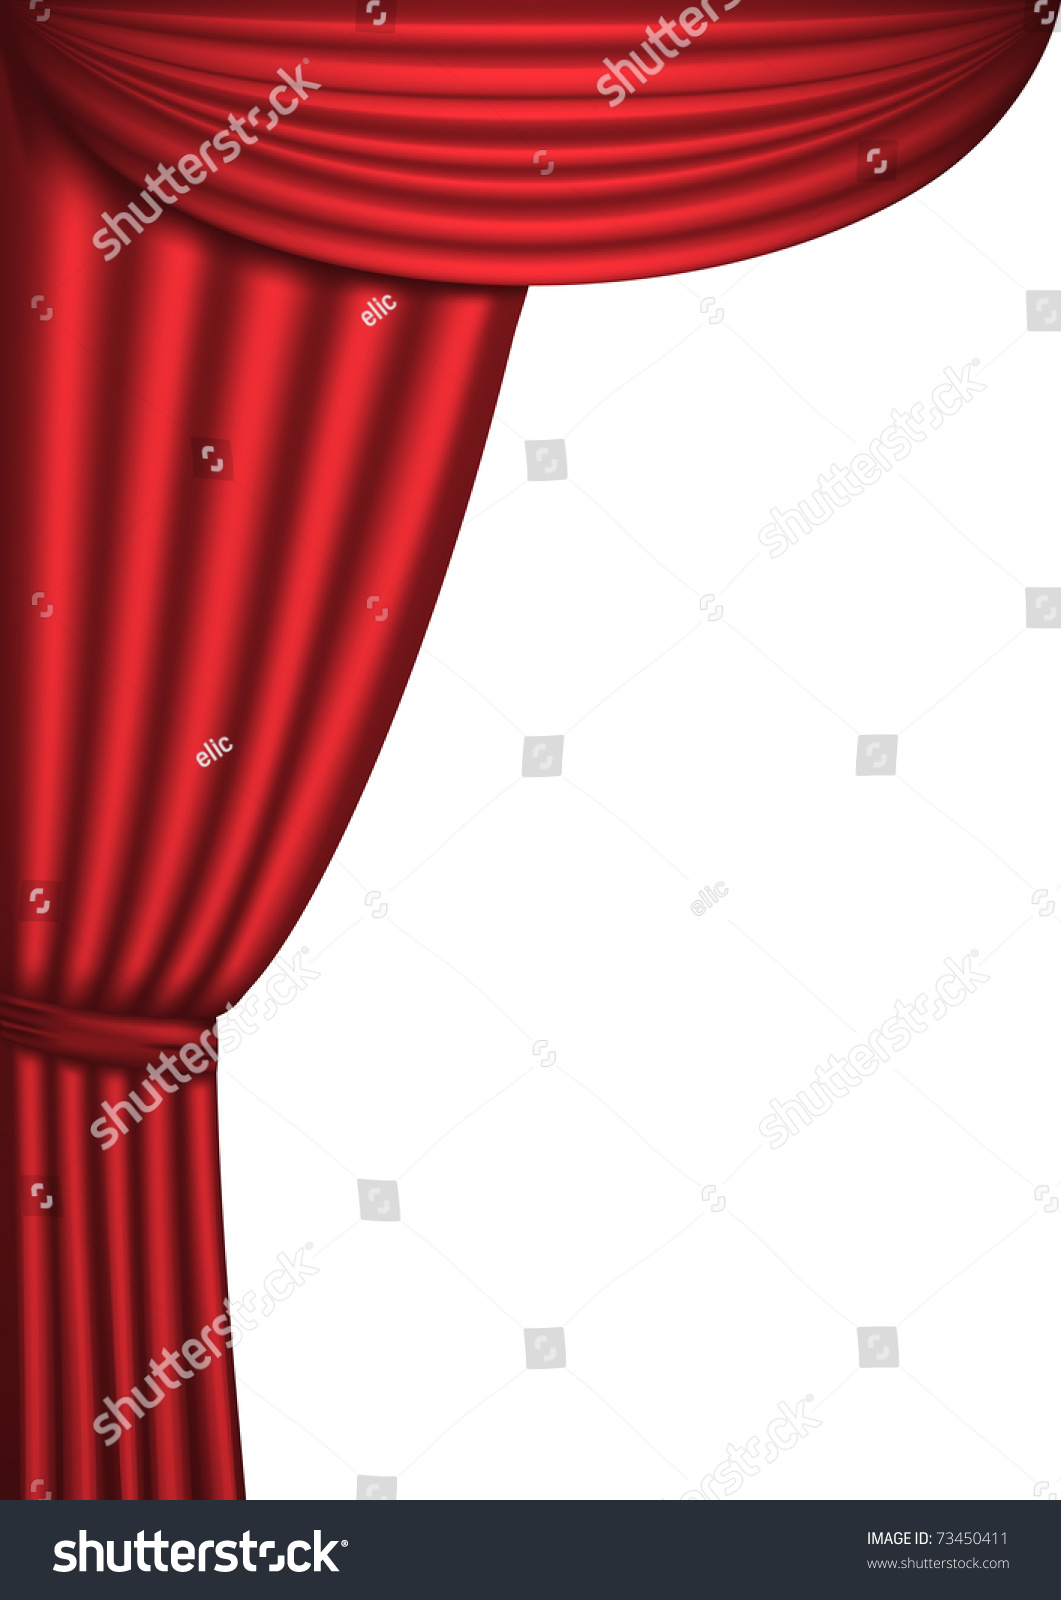 Open theater drapes or stage curtains royalty free stock image image - Open Red Theater Curtain Background Vector Illustration